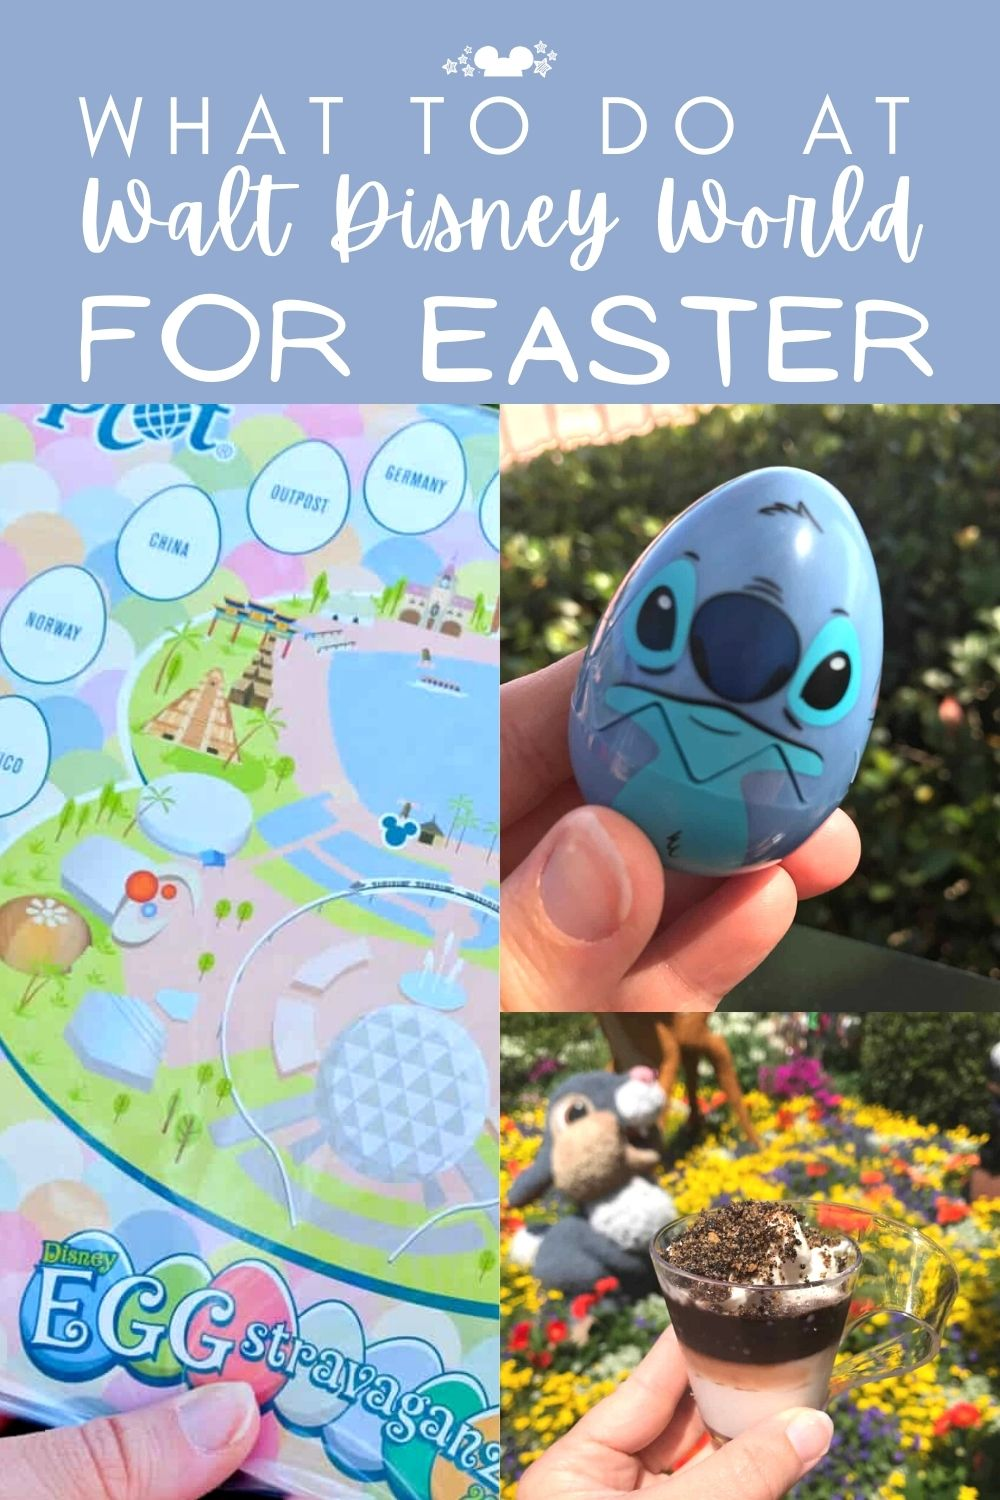 Easter at Walt Disney World is all abotu springtime, new Snacks, fun games, and beautifully decorated eggs across resorts! Check out everything to do at Disney World this Easter. #polkadotpixies #disneyeaster #disneyfamily